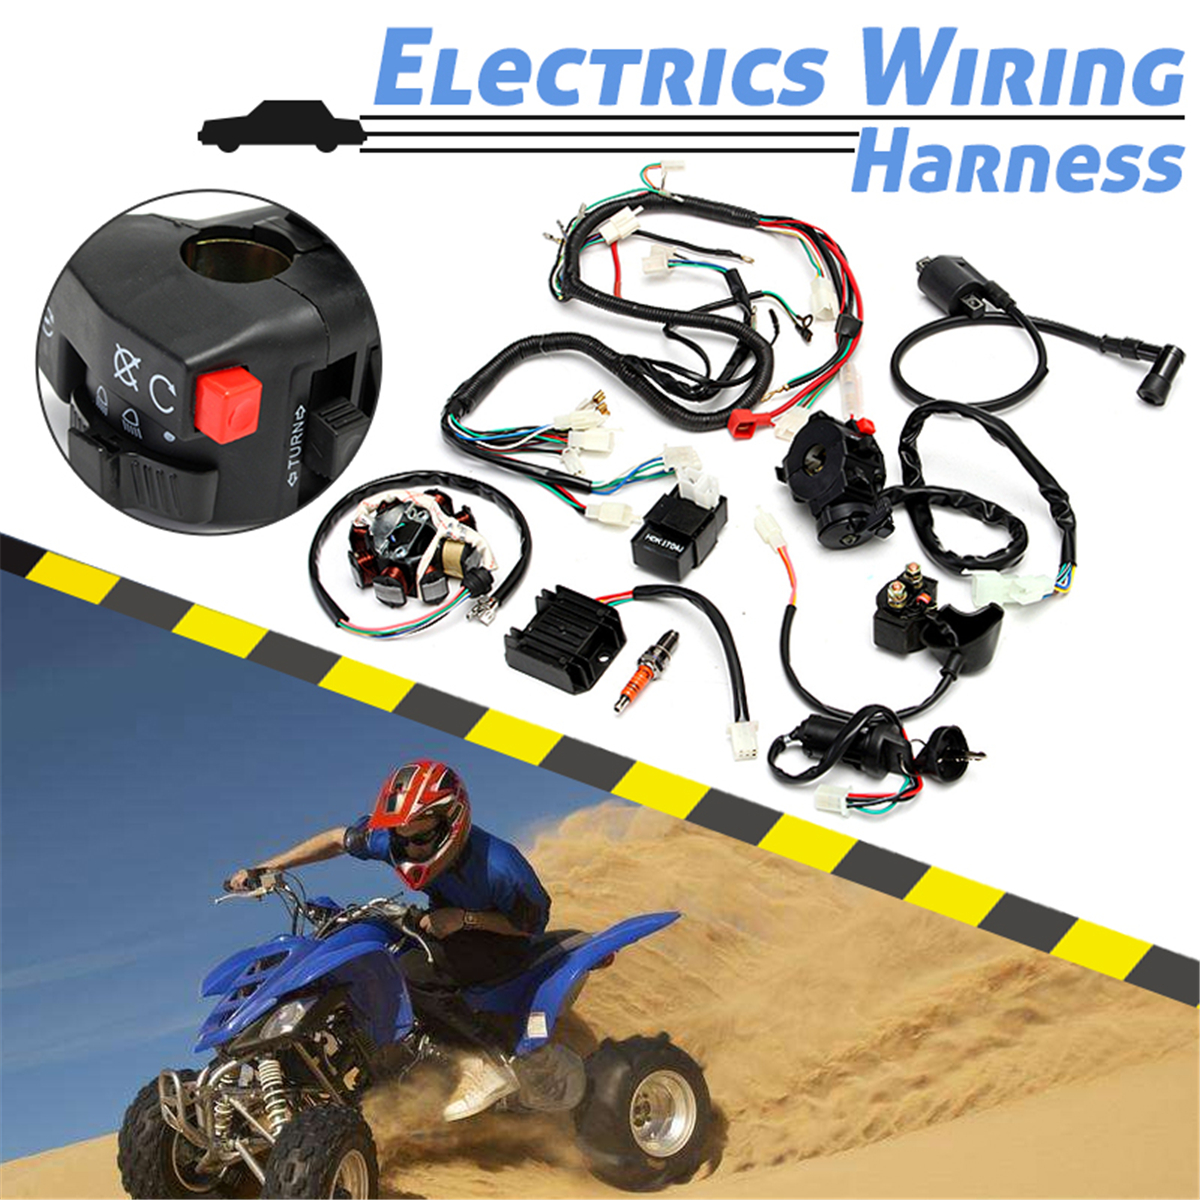 Full Electrics Wiring Harness Cdi Coil 110cc 125cc Atv Quad Bike Buggy Gokart New Varieties Are Introduced One After Another Back To Search Resultsautomobiles & Motorcycles